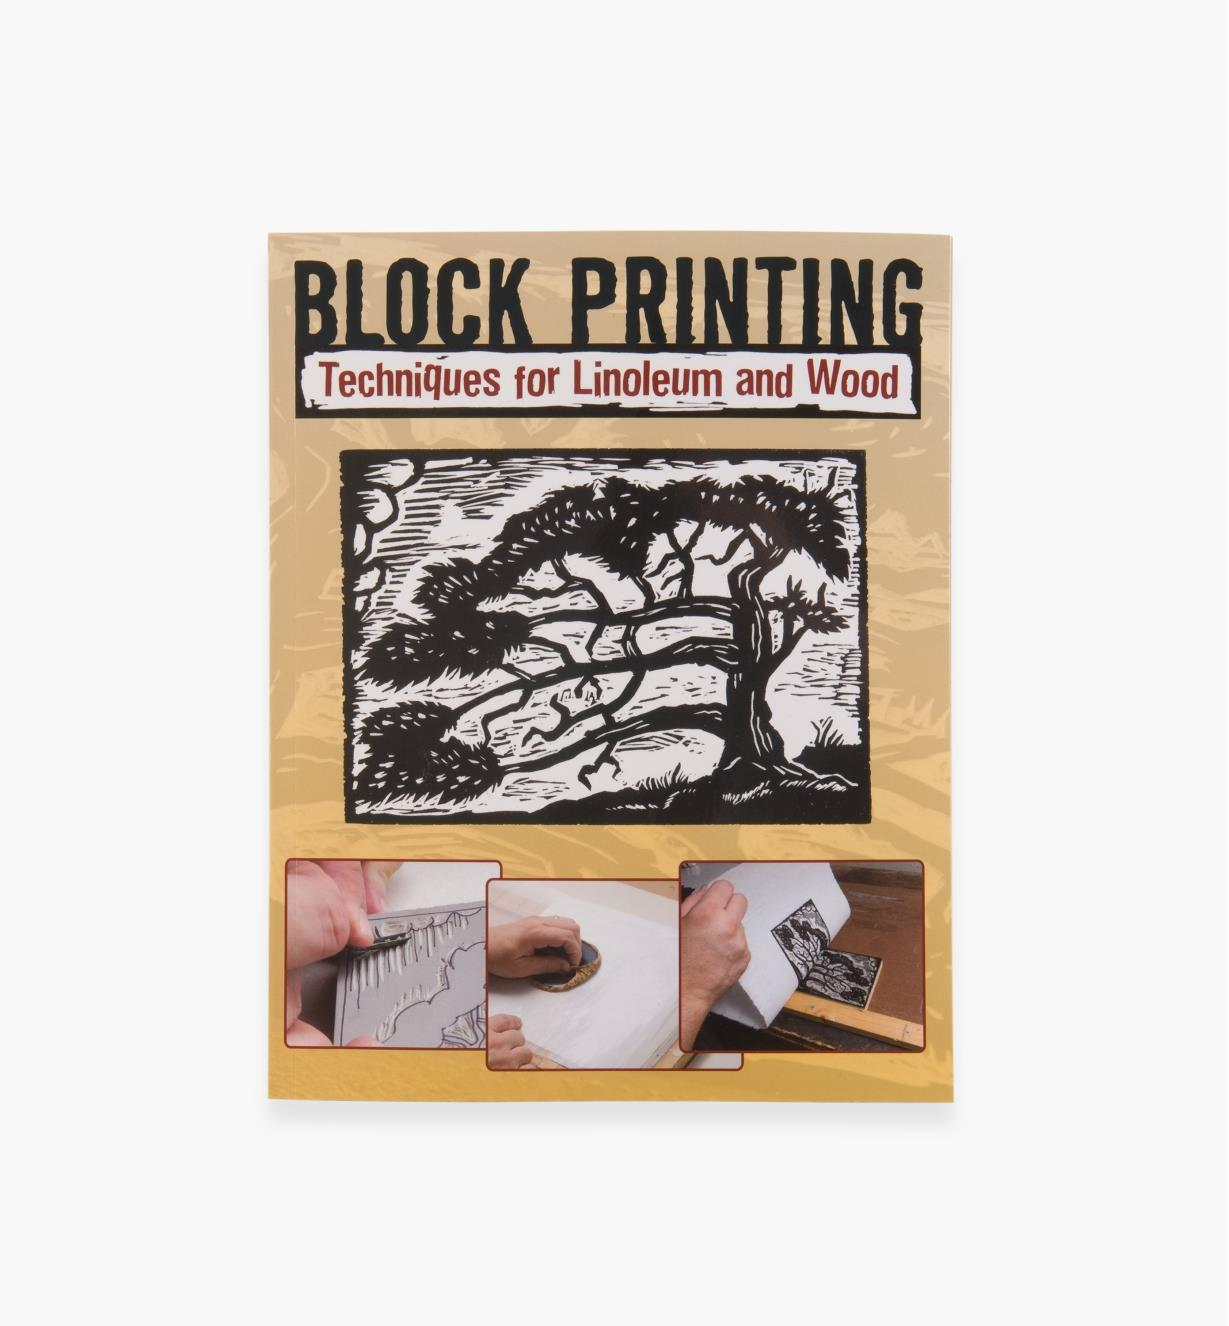 26L0109 - Block Printing Techniques for Linoleum and Wood